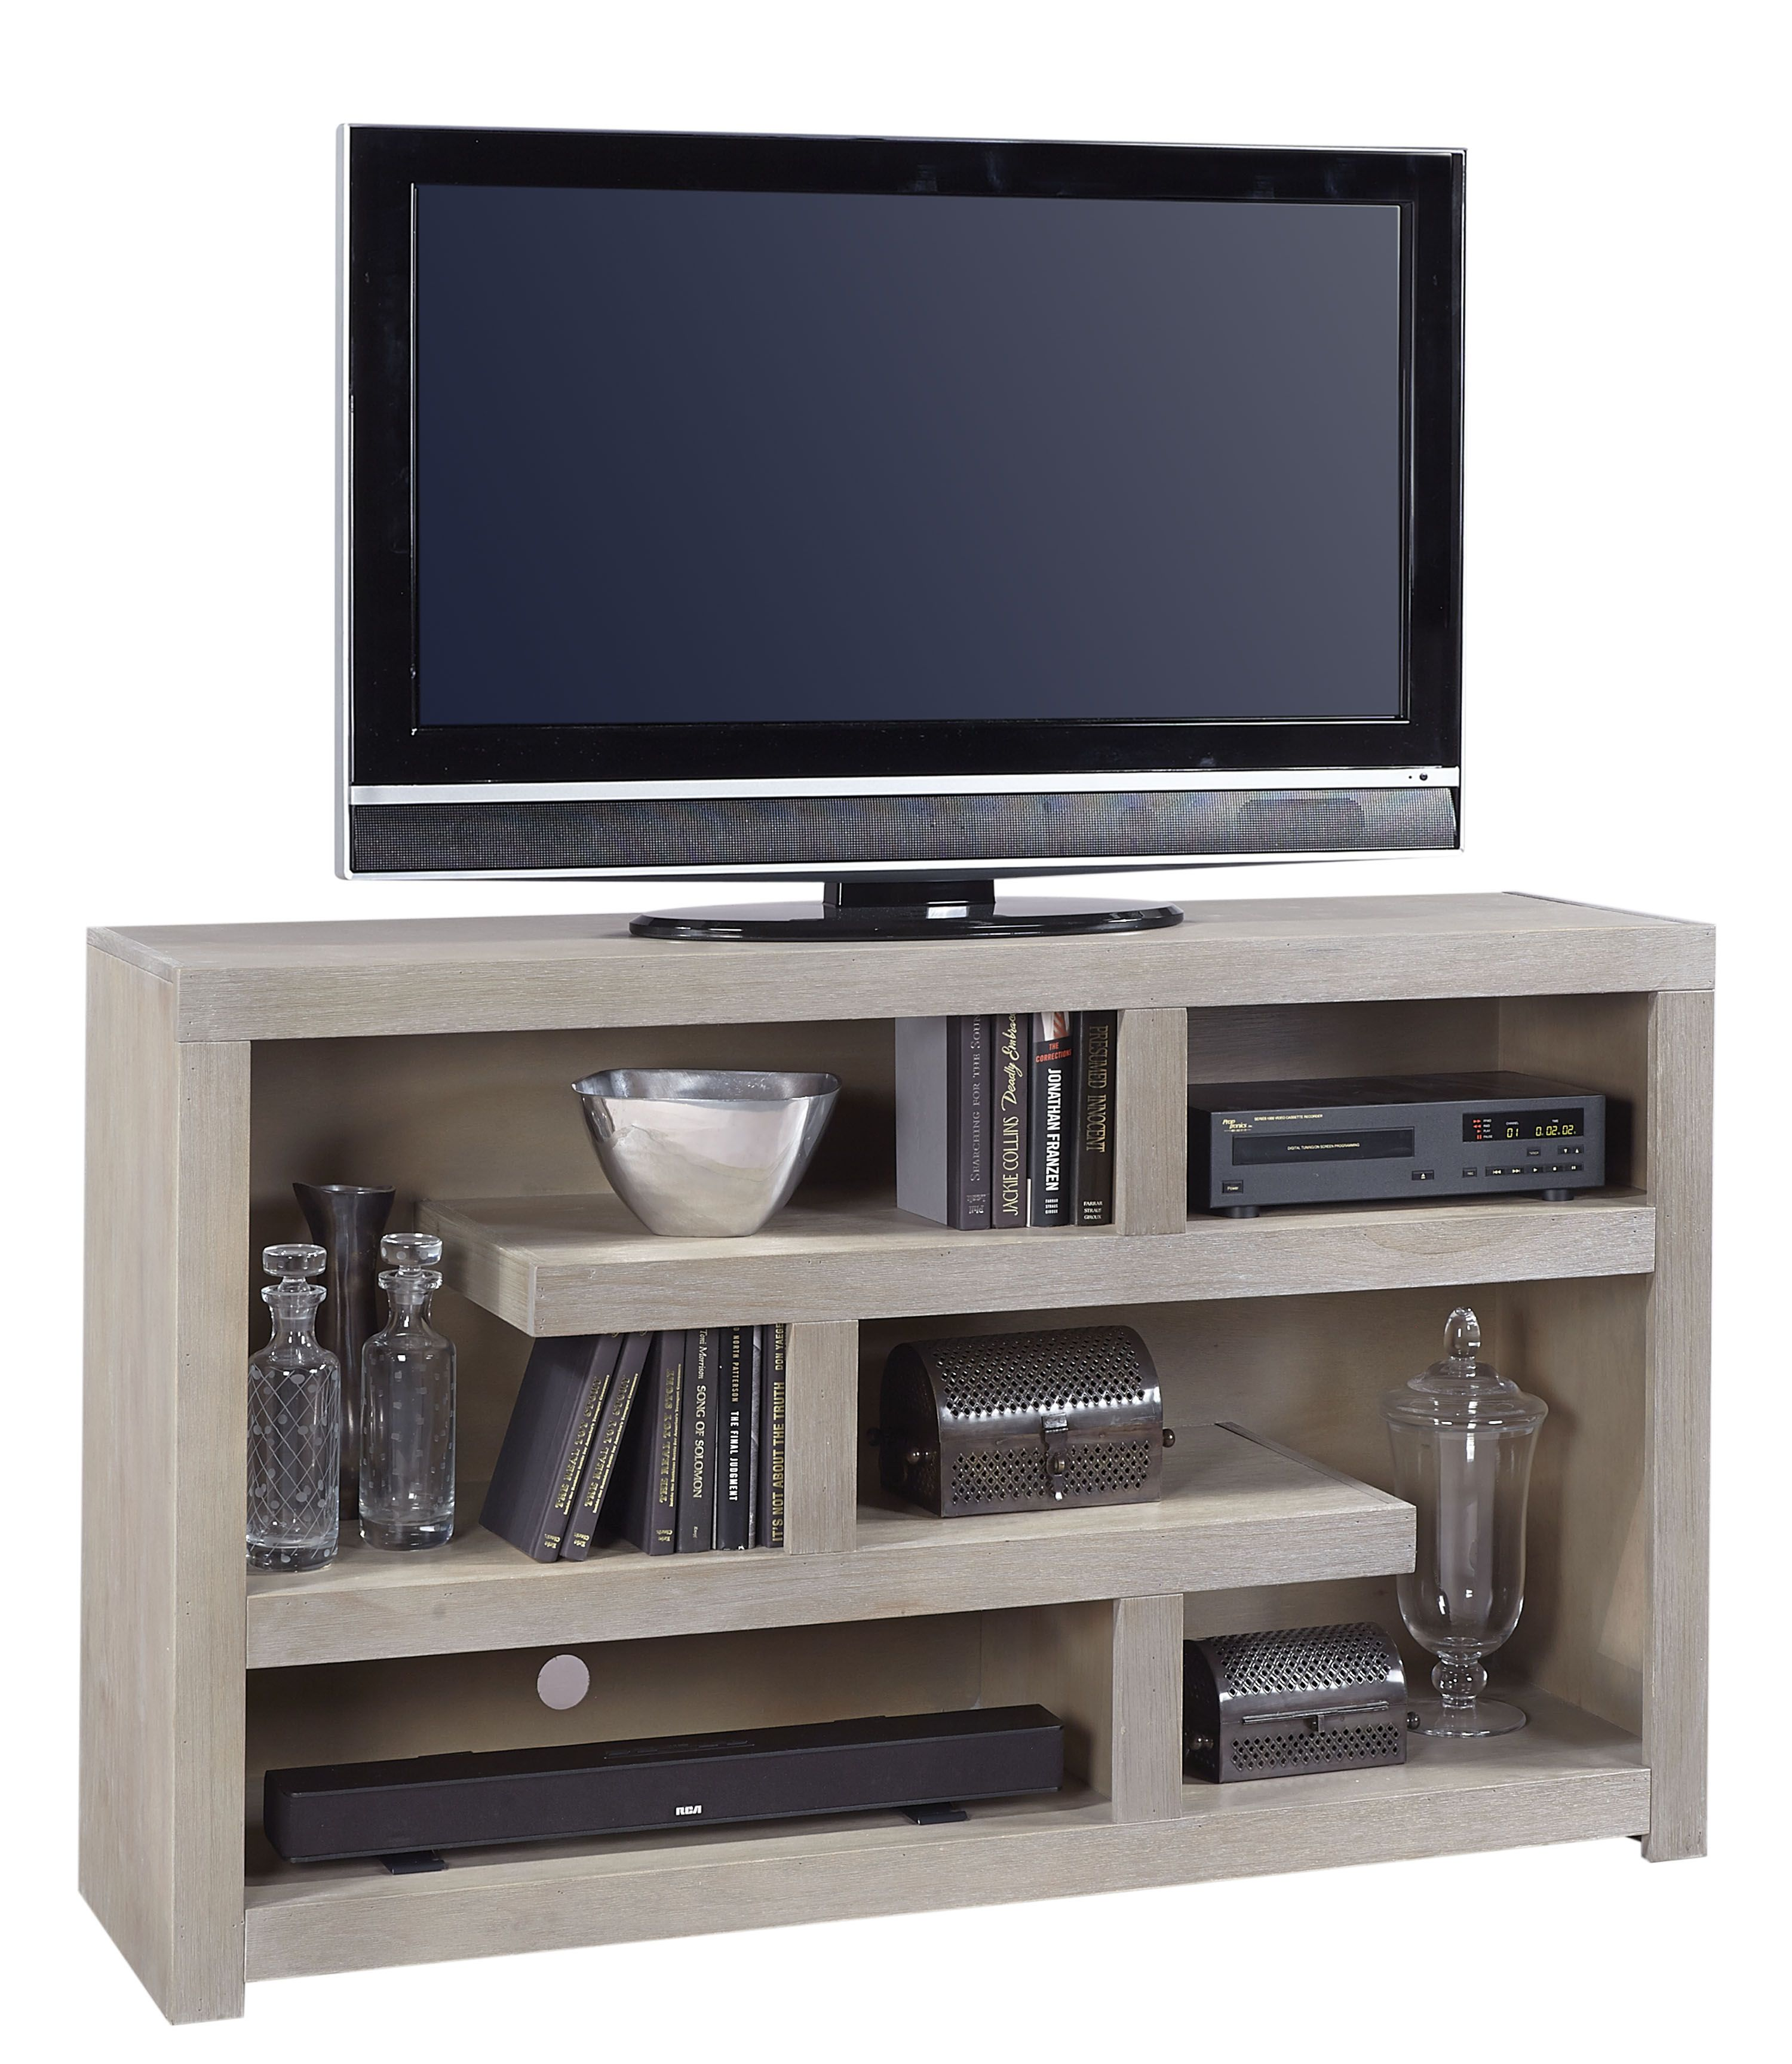 Contemporary driftwood inch open console with geometric shelving